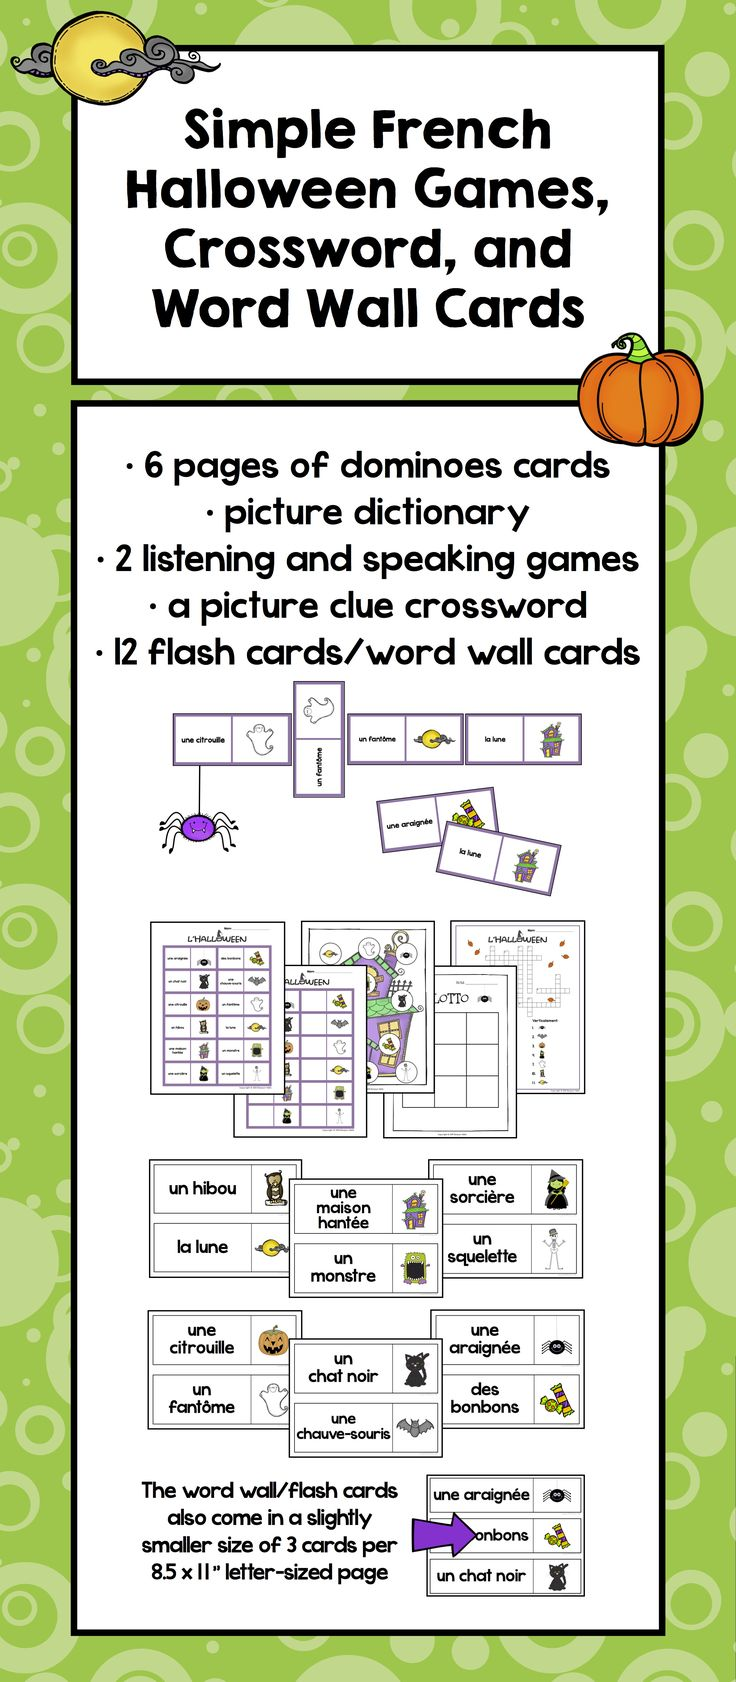 French Foreign Language Worksheets & Free Printables ...